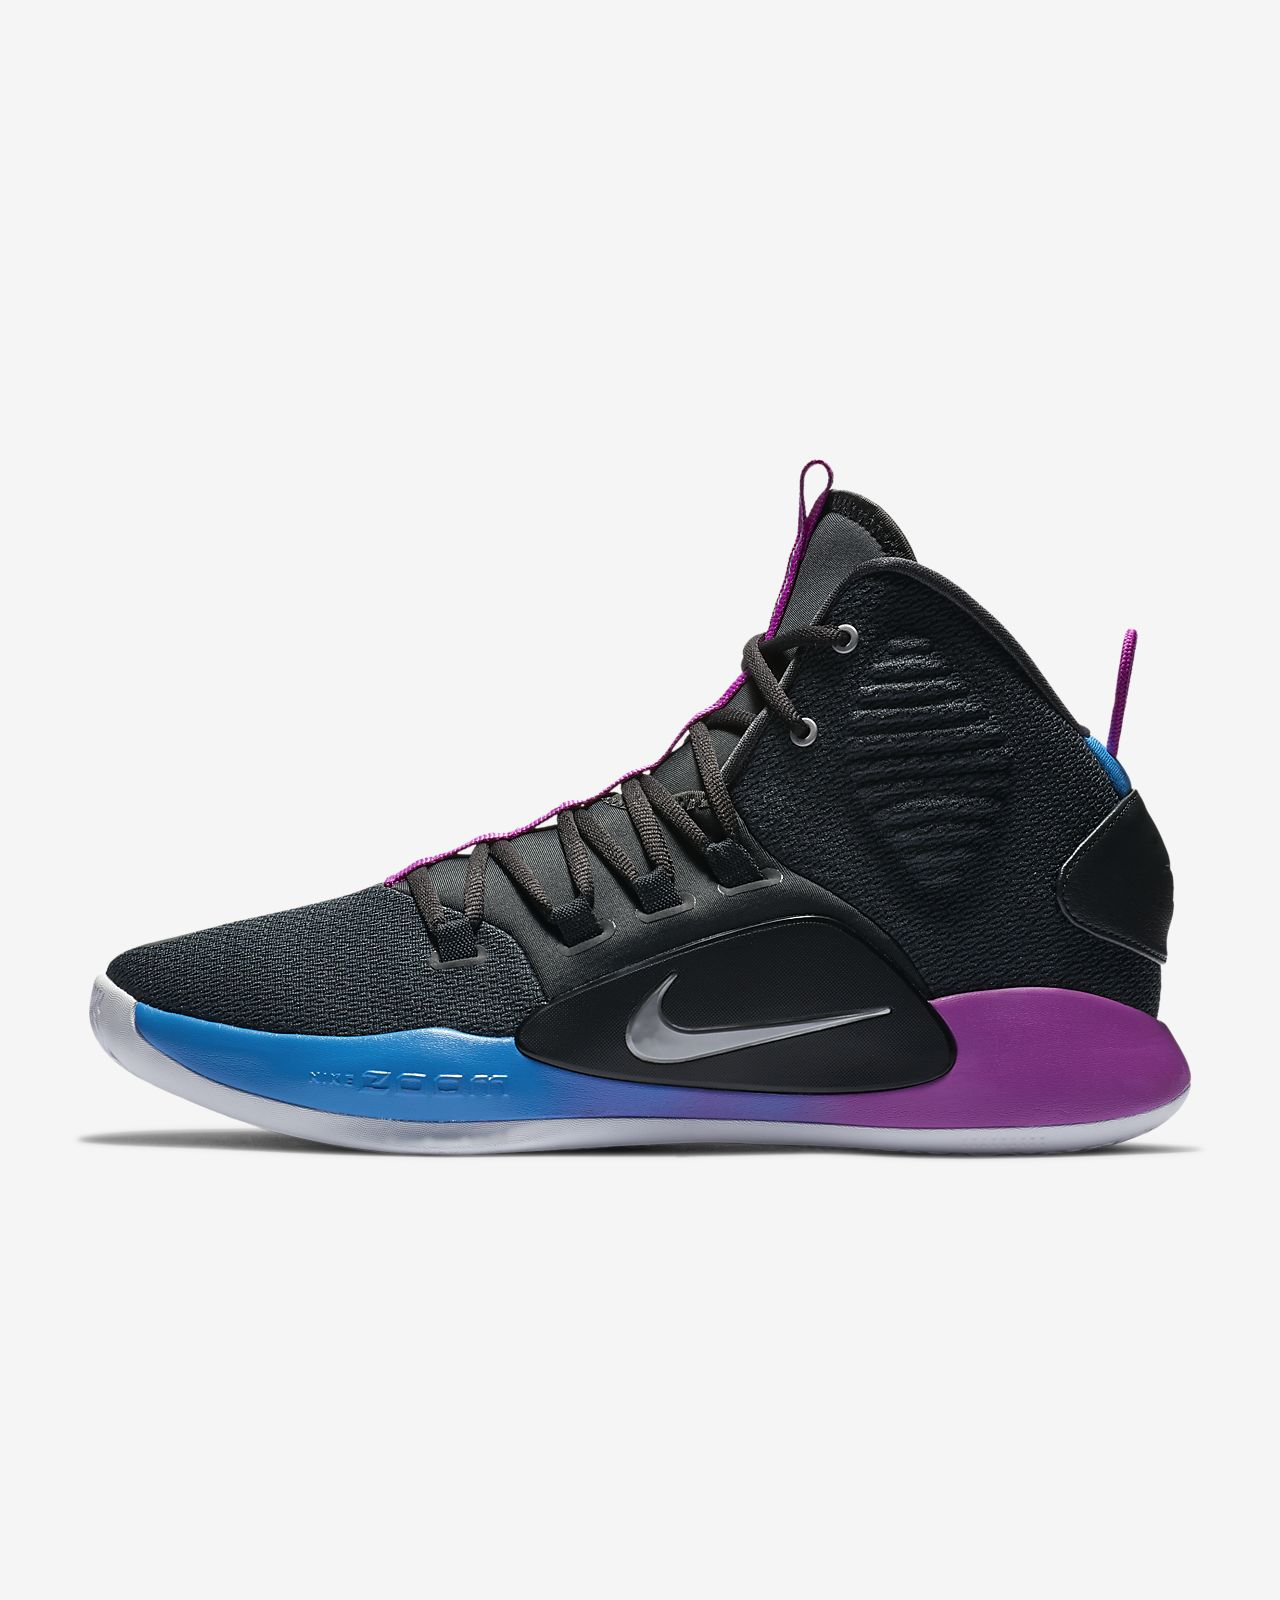 the latest f79a9 cd266 Nike Hyperdunk X